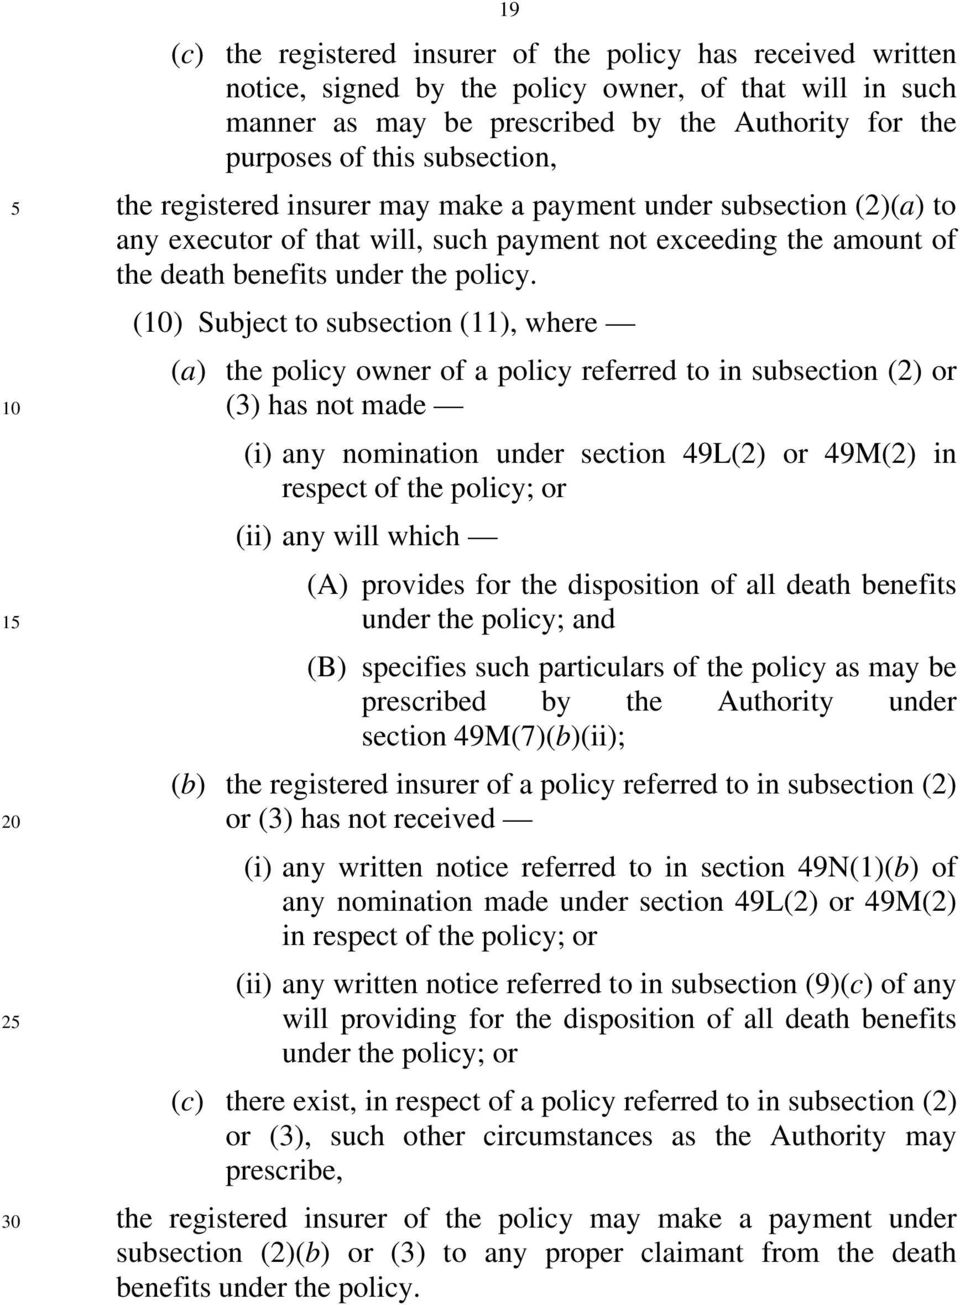 () Subject to subsection (11), where (a) the policy owner of a policy referred to in subsection (2) or (3) has not made (i) any nomination under section 49L(2) or 49M(2) in respect of the policy; or